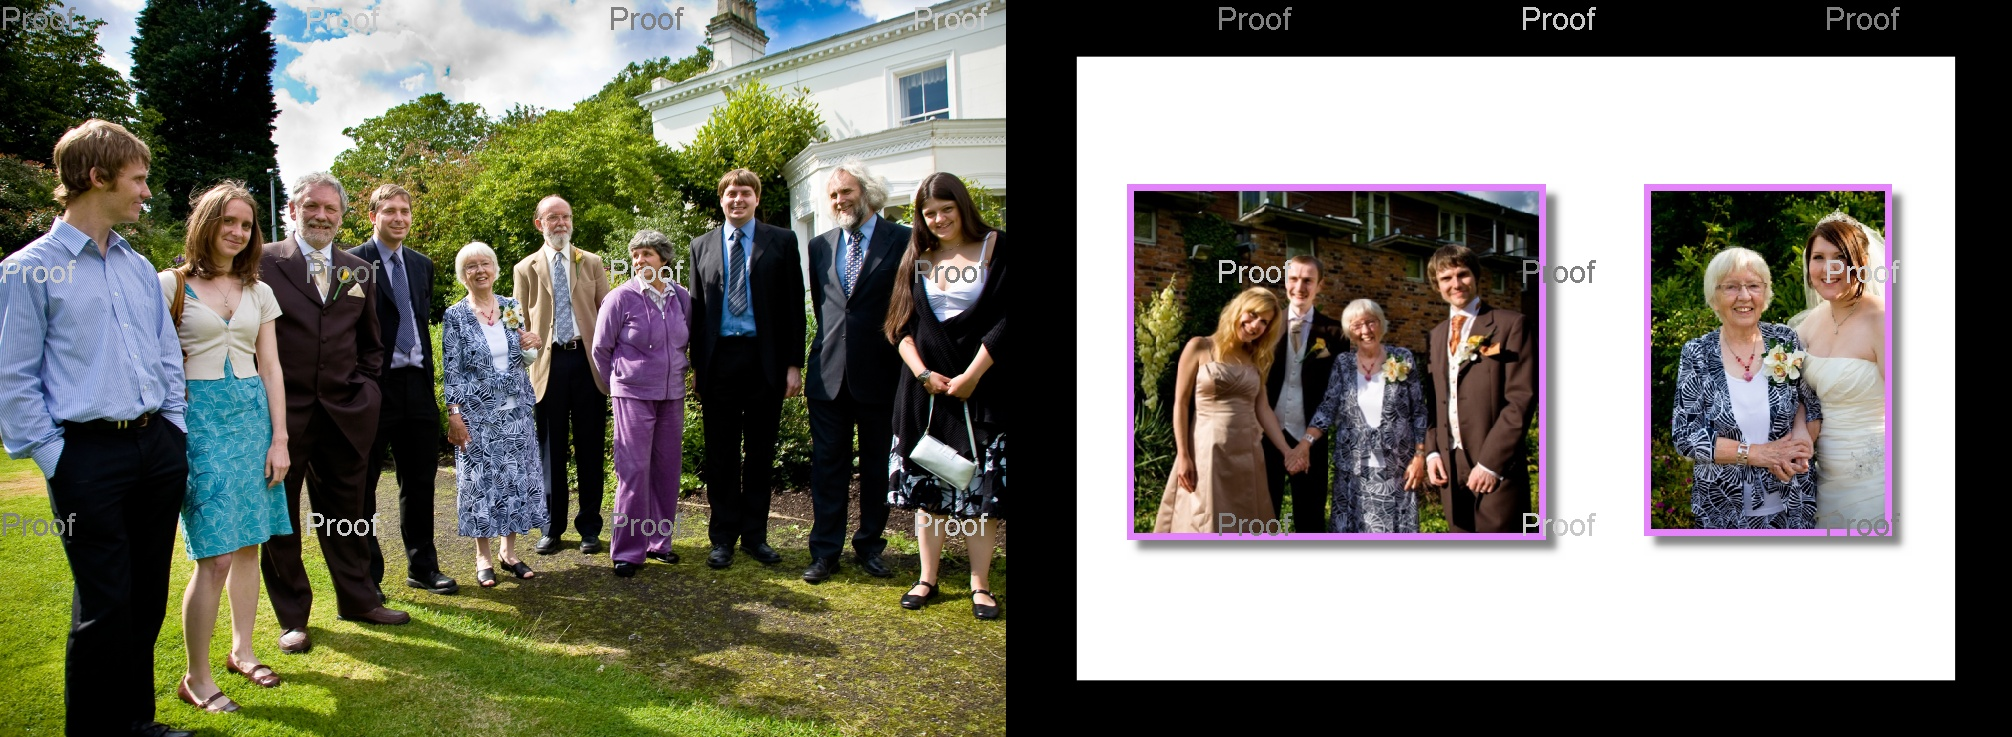 pages 50-51 of wedding storybook album with family photos outside Chancellors Hotel & Conference Centre